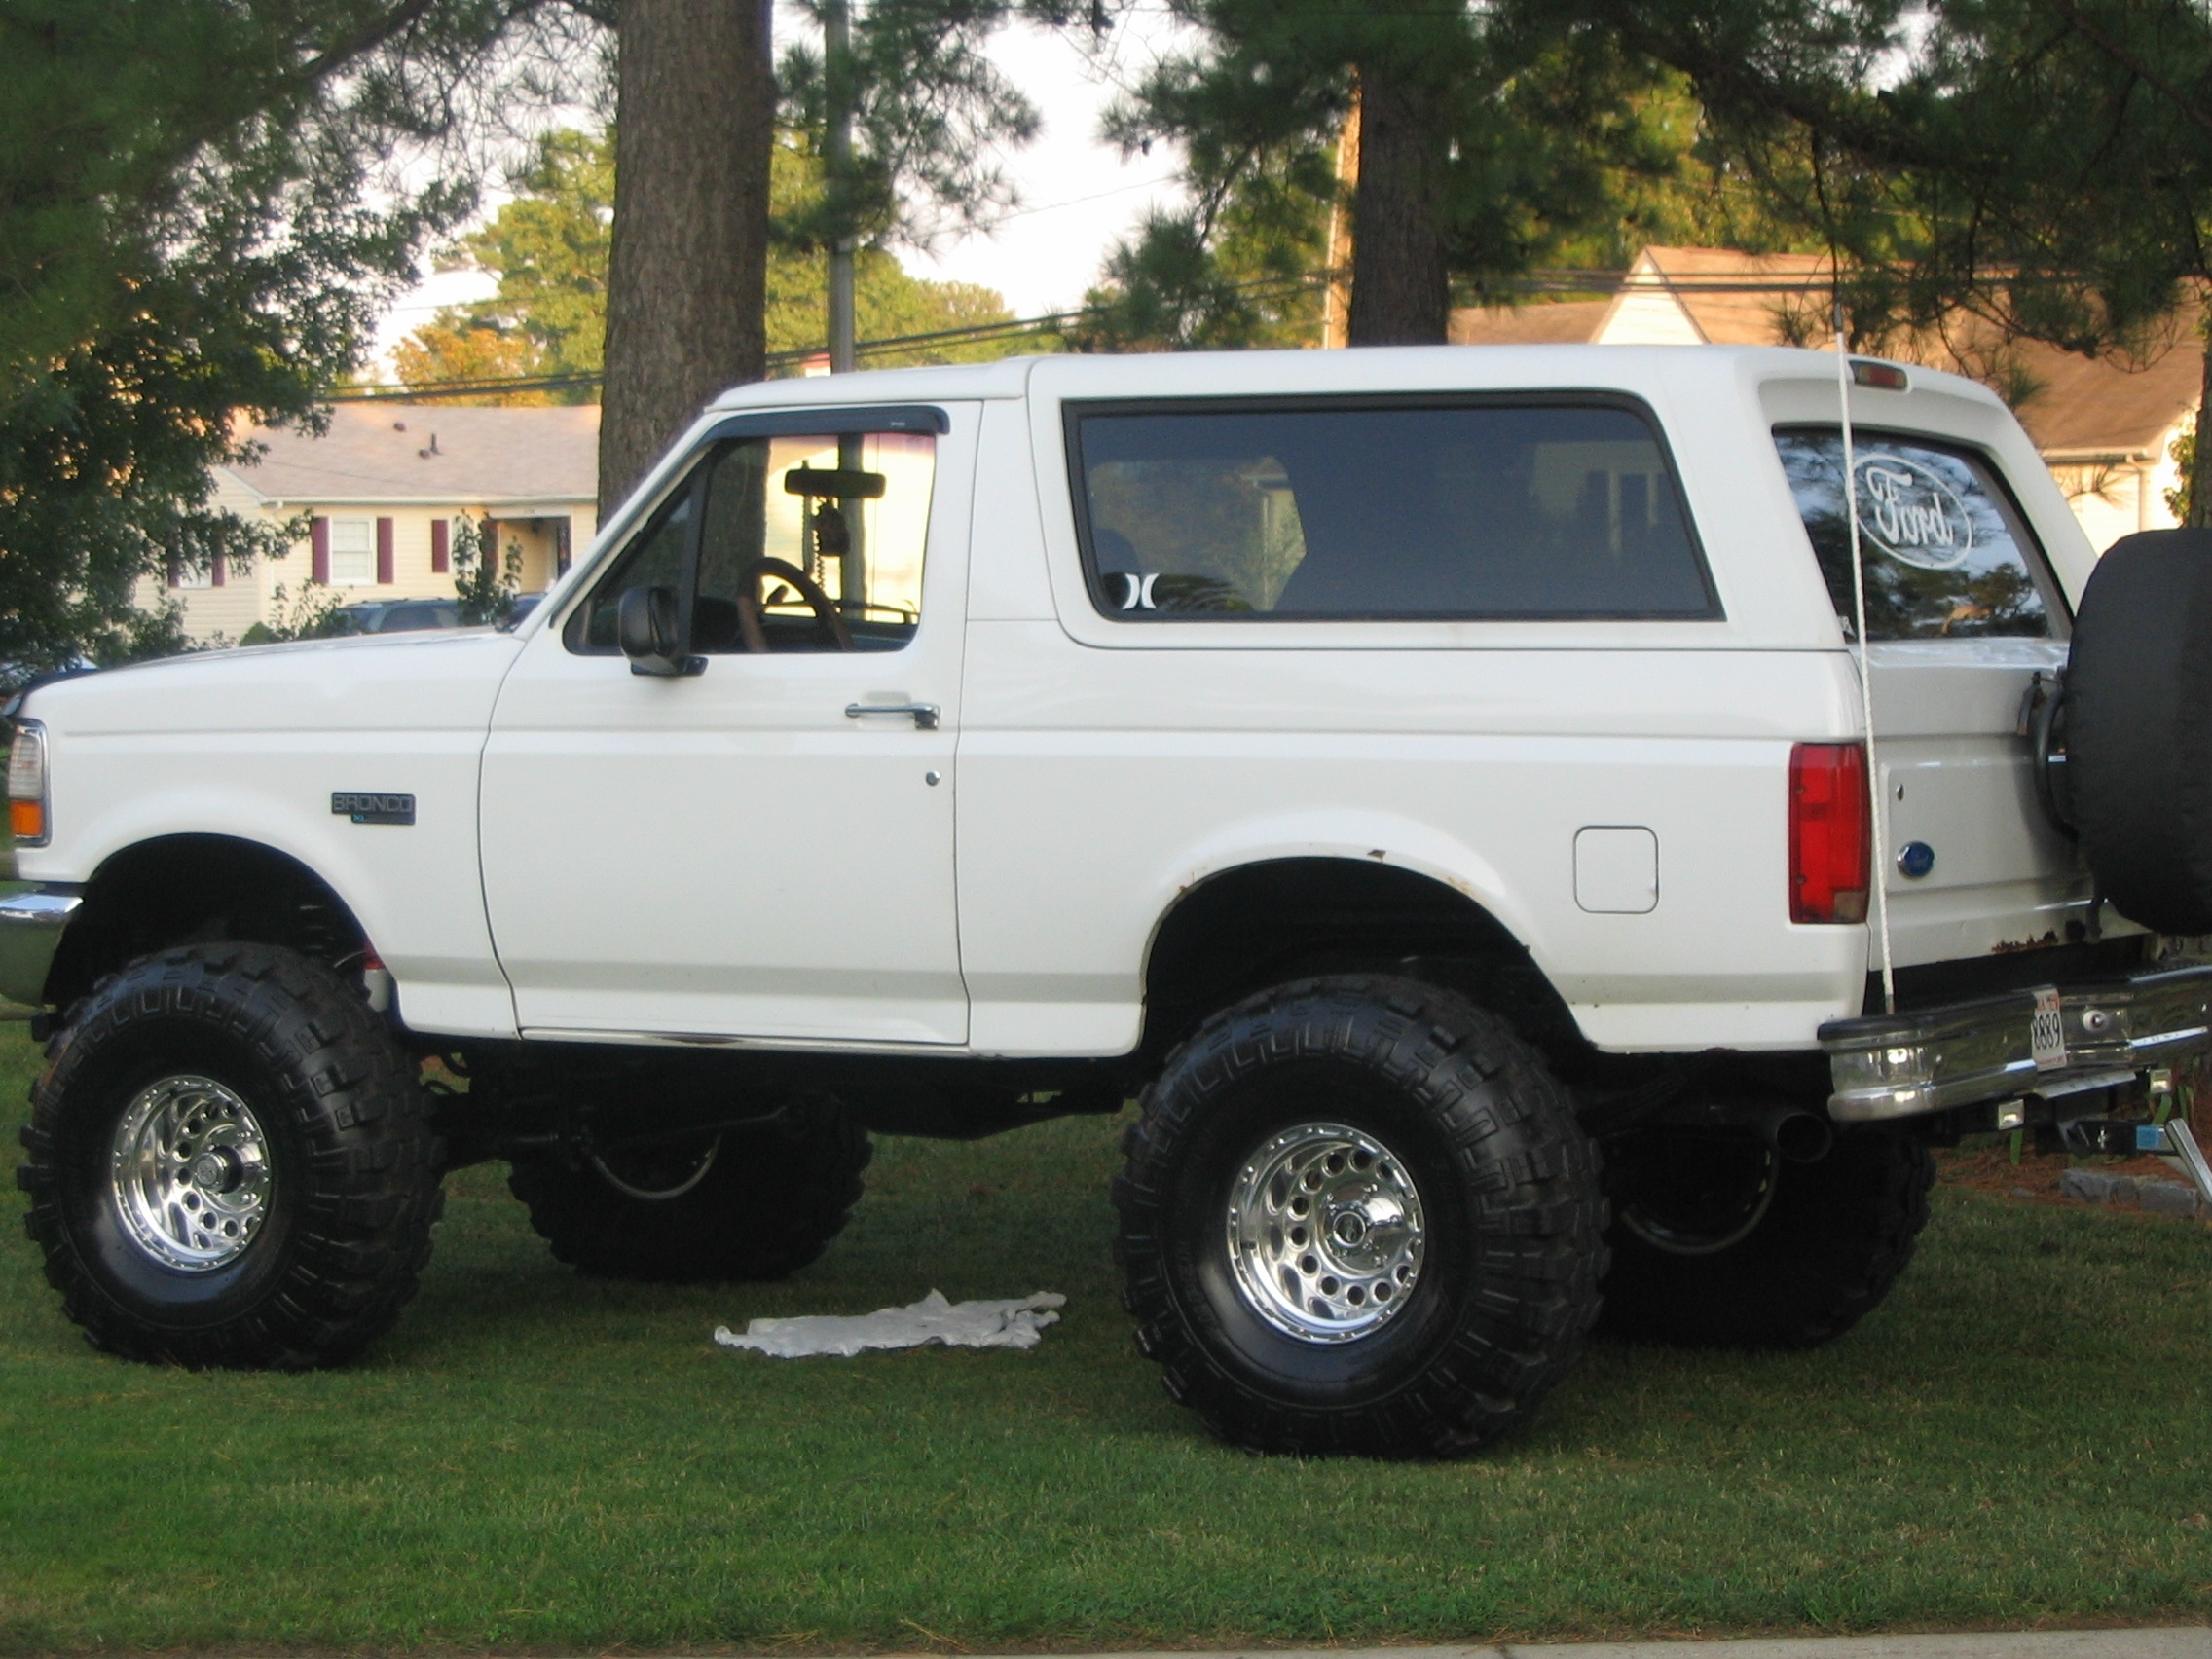 1995 Ford Bronco >> Whtebronco 1995 Ford Bronco Specs Photos Modification Info